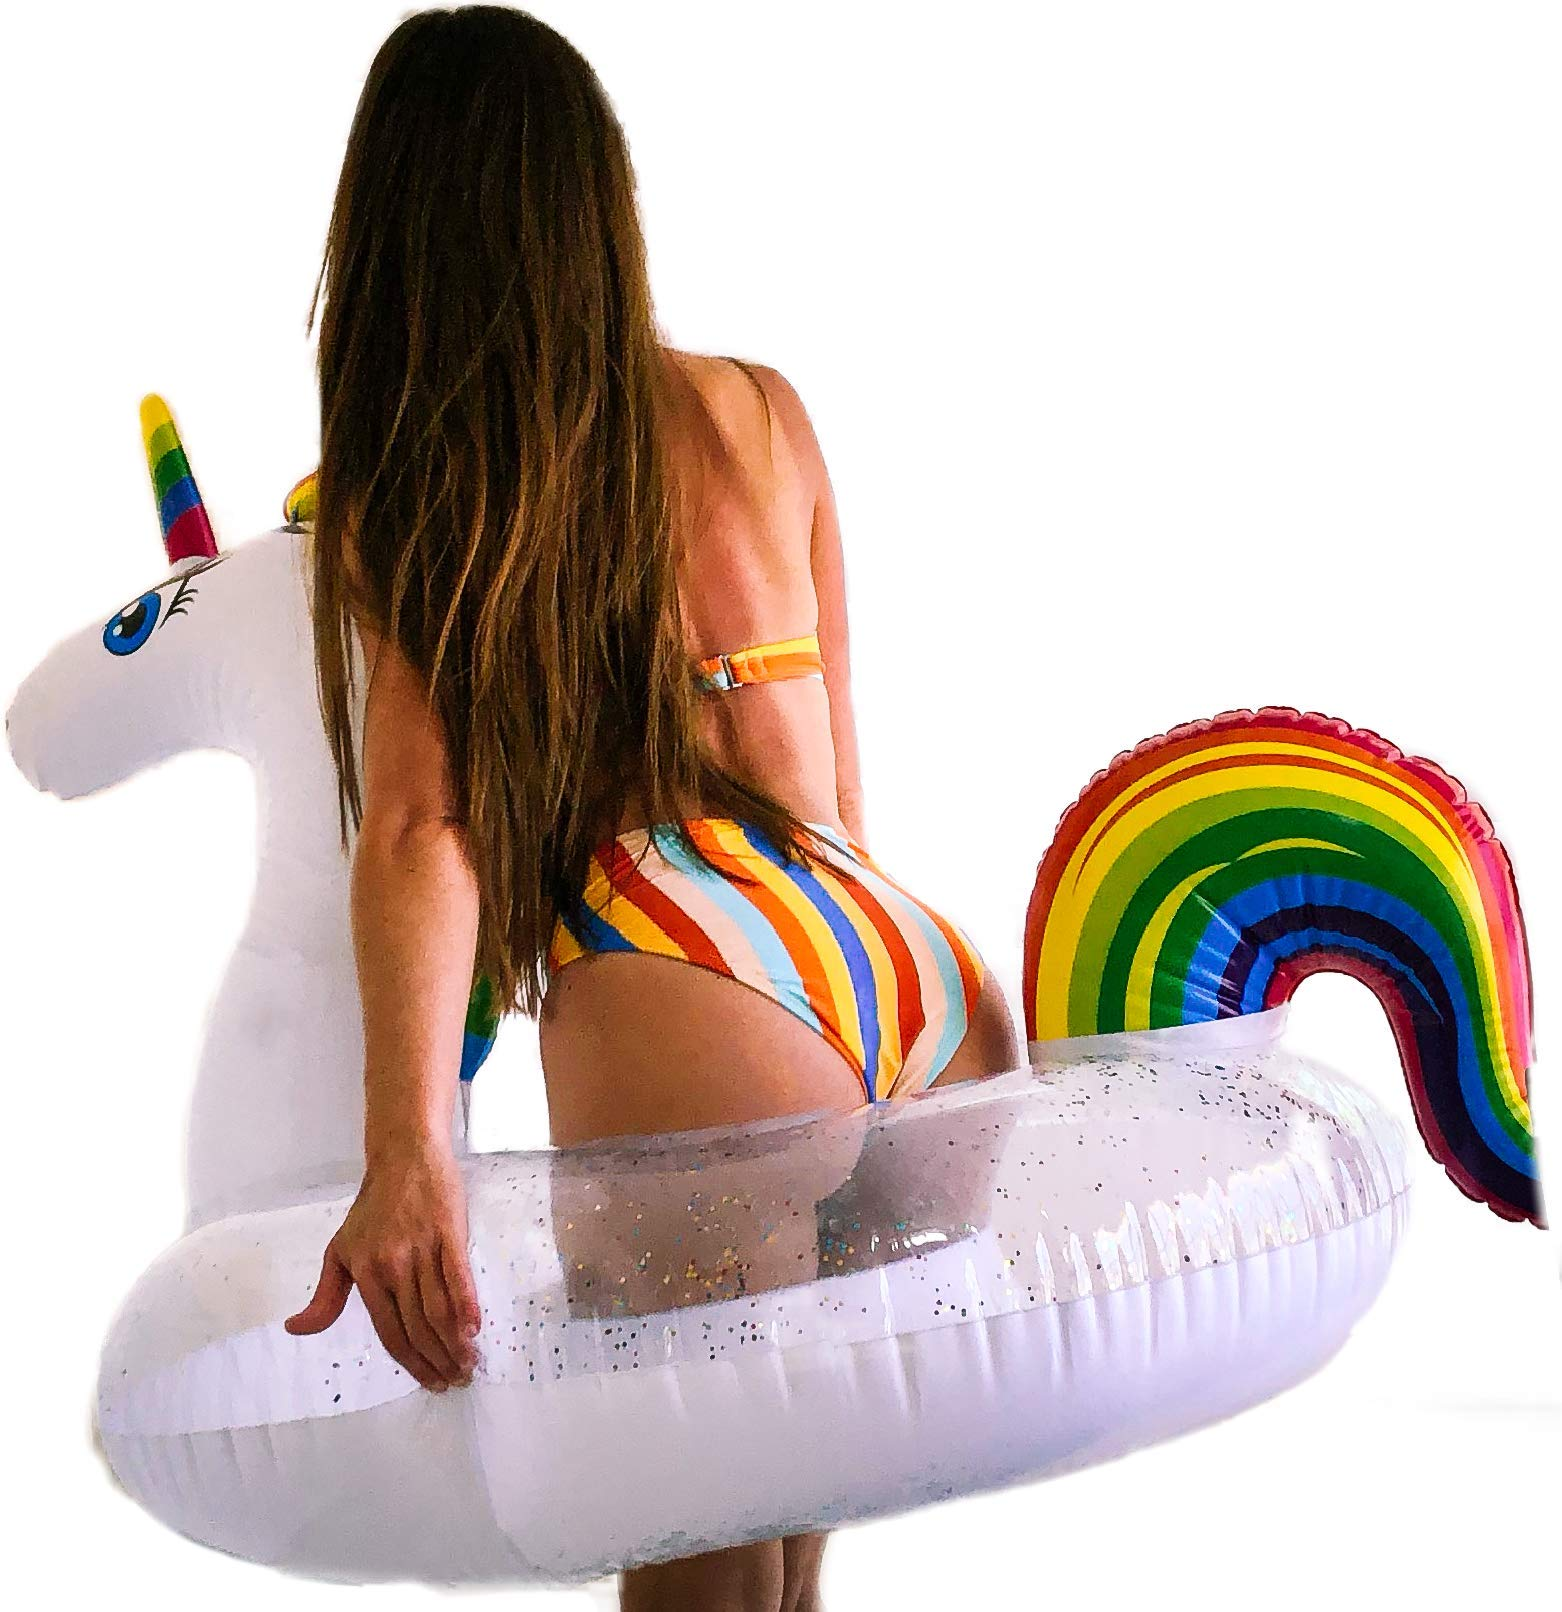 Unicorn Pool Floats for Kids - Glitter Filled - Ride ON Inflatable Unicorn Float for Pool Lake River RAFT - Giant… 10